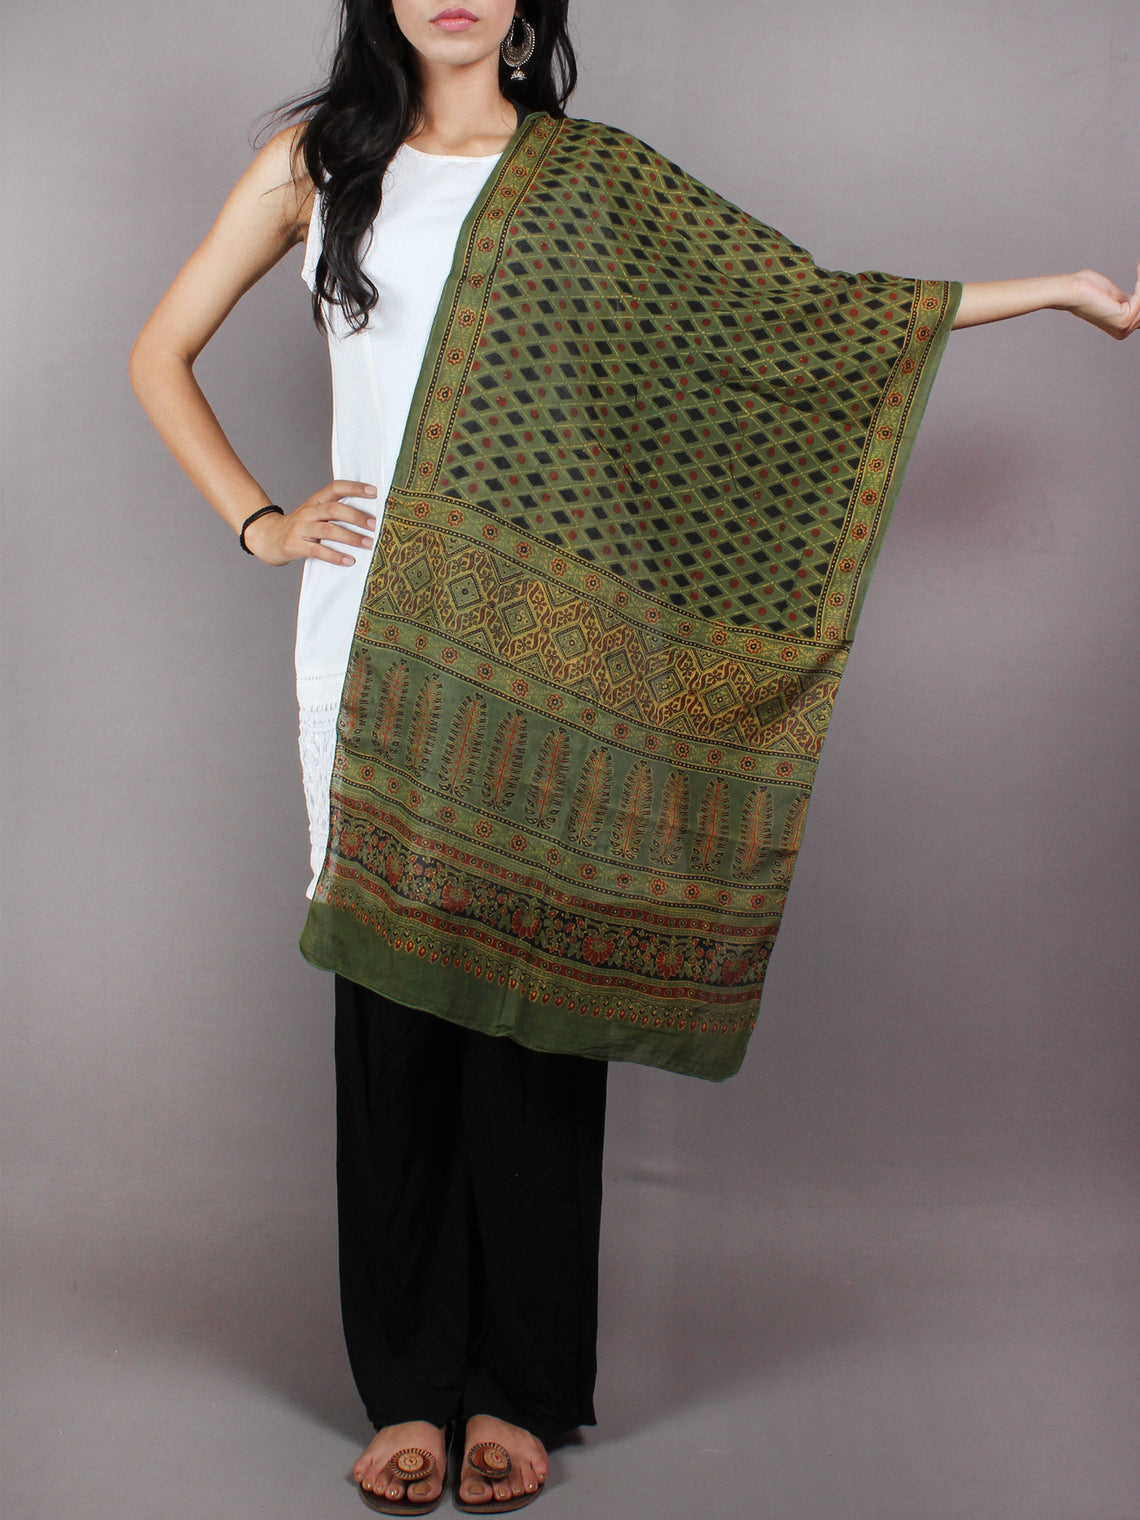 Green Multi Color Mughal Nakashi Ajrakh Hand Block Printed Cotton Stole - S6317040